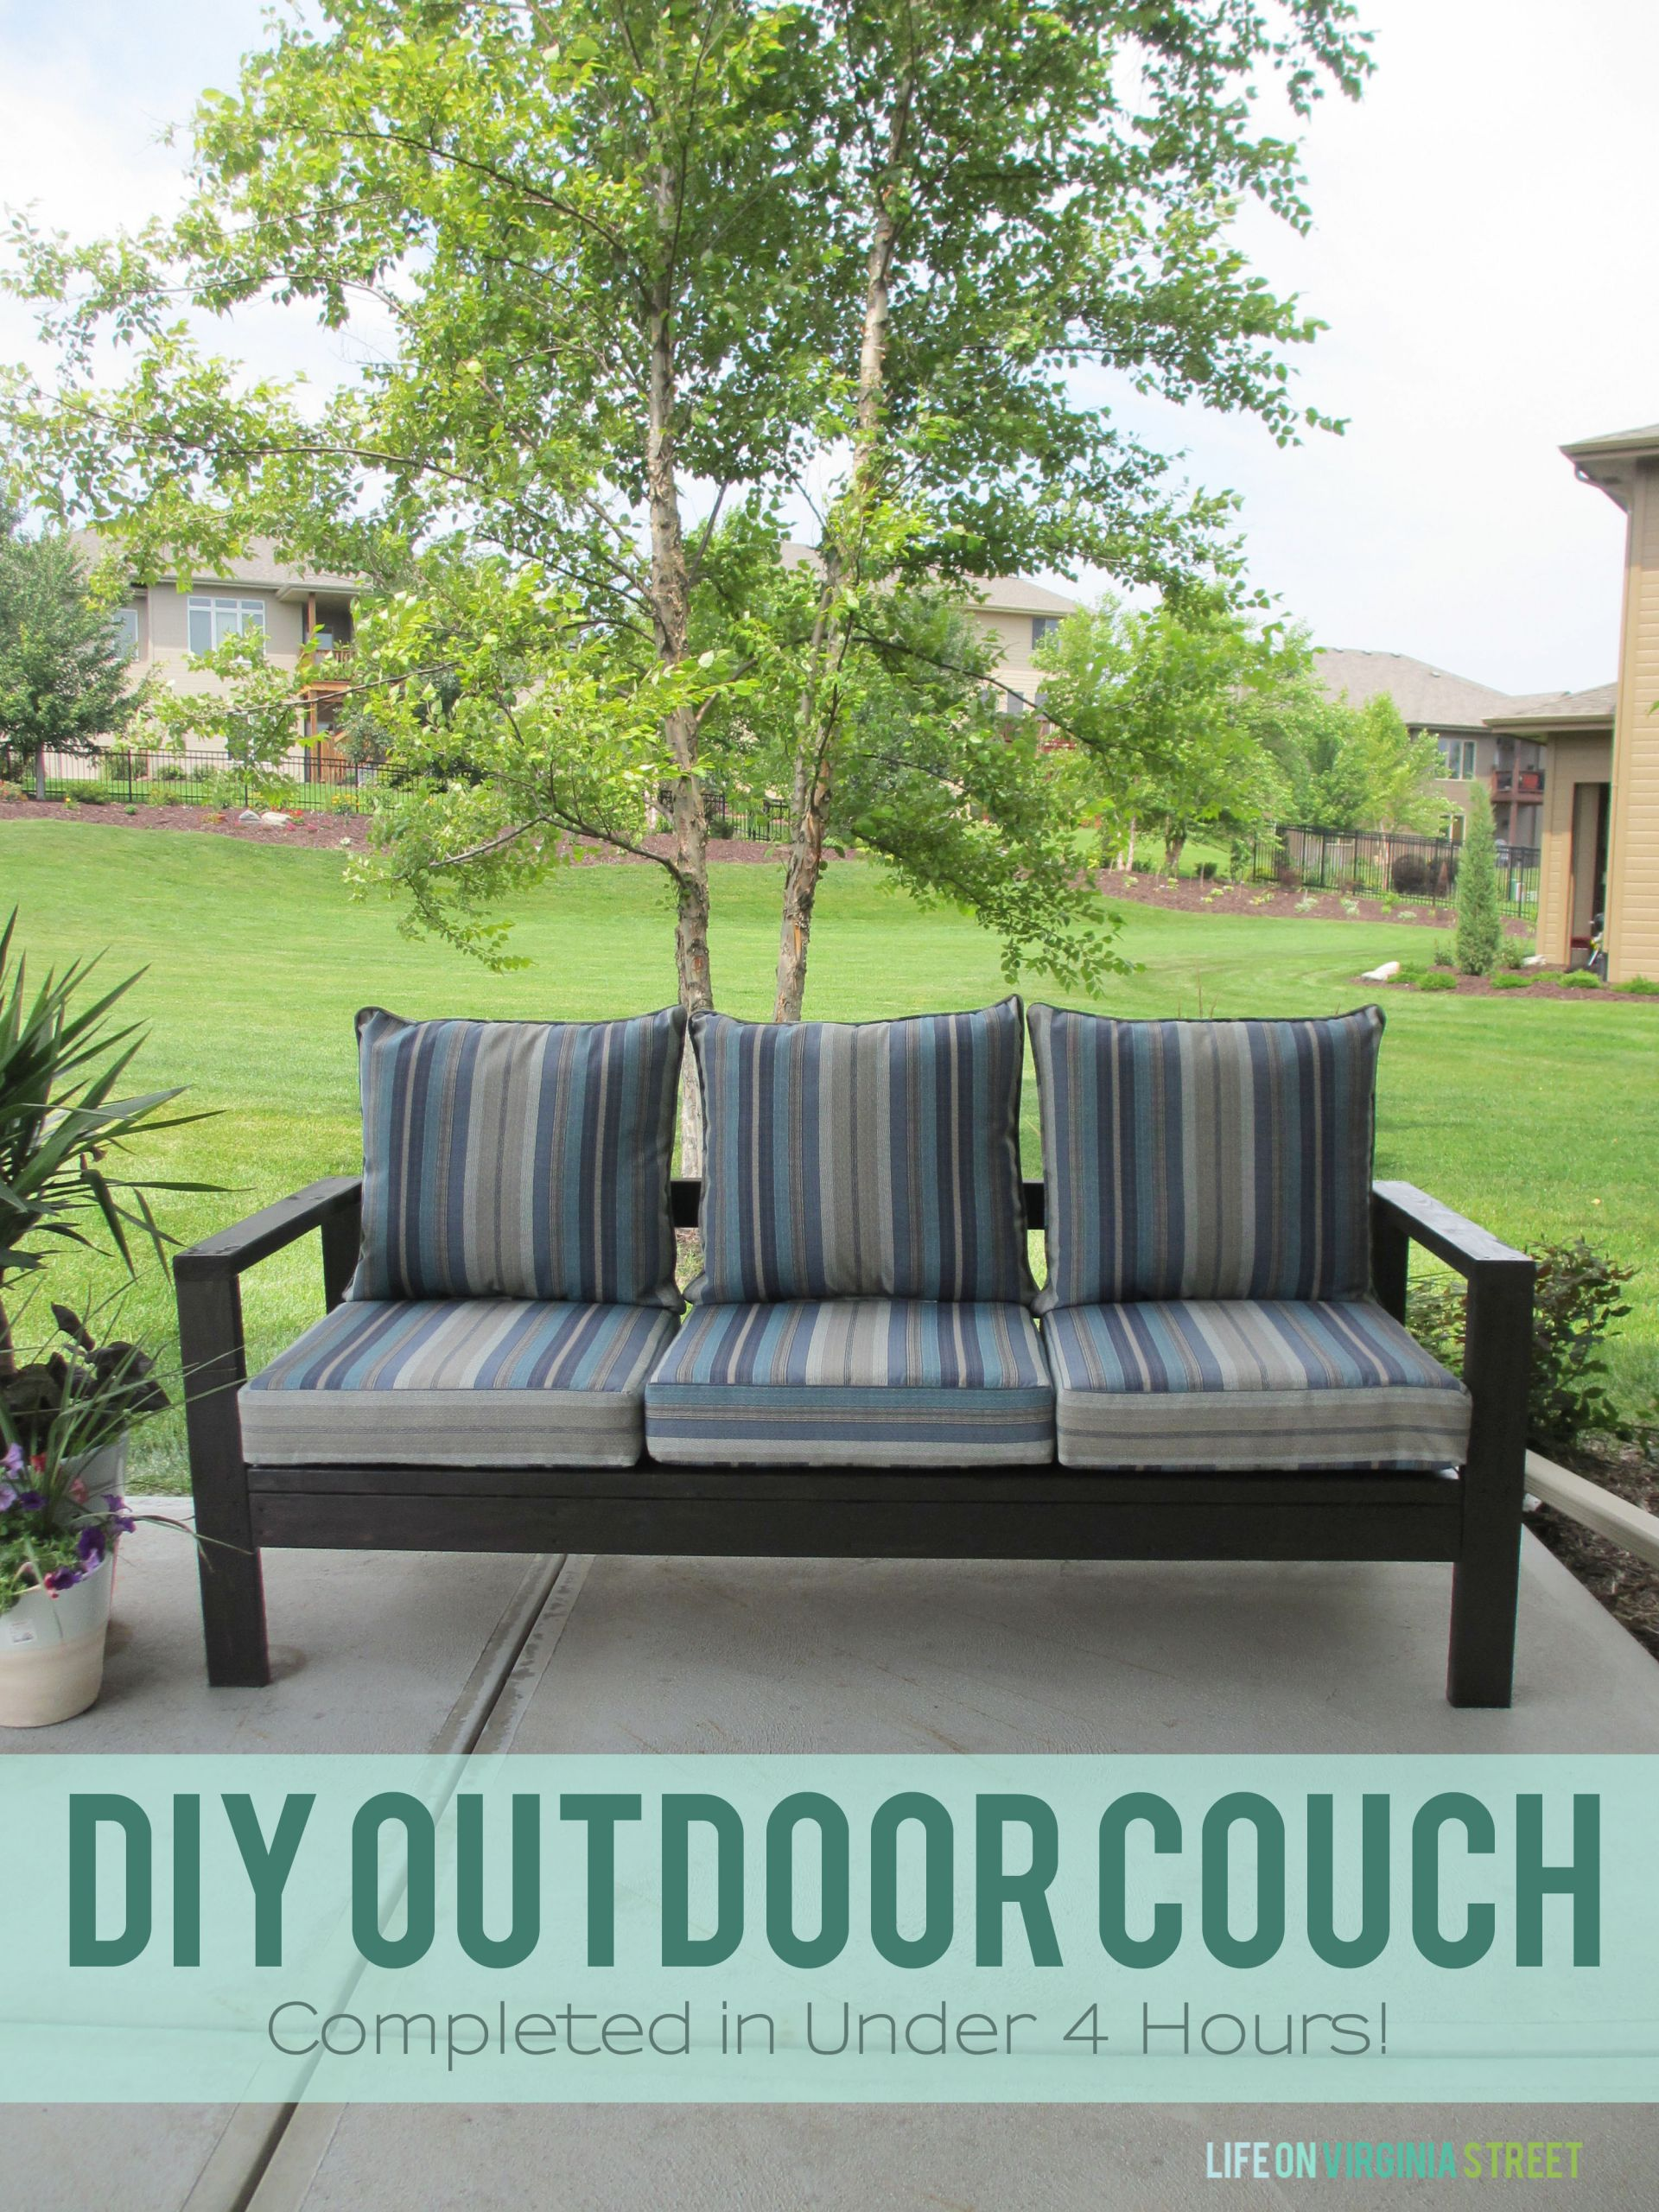 1583874640 149 The Best Ideas for Outdoor sofa Diy – Home Family Style and Art Ideas